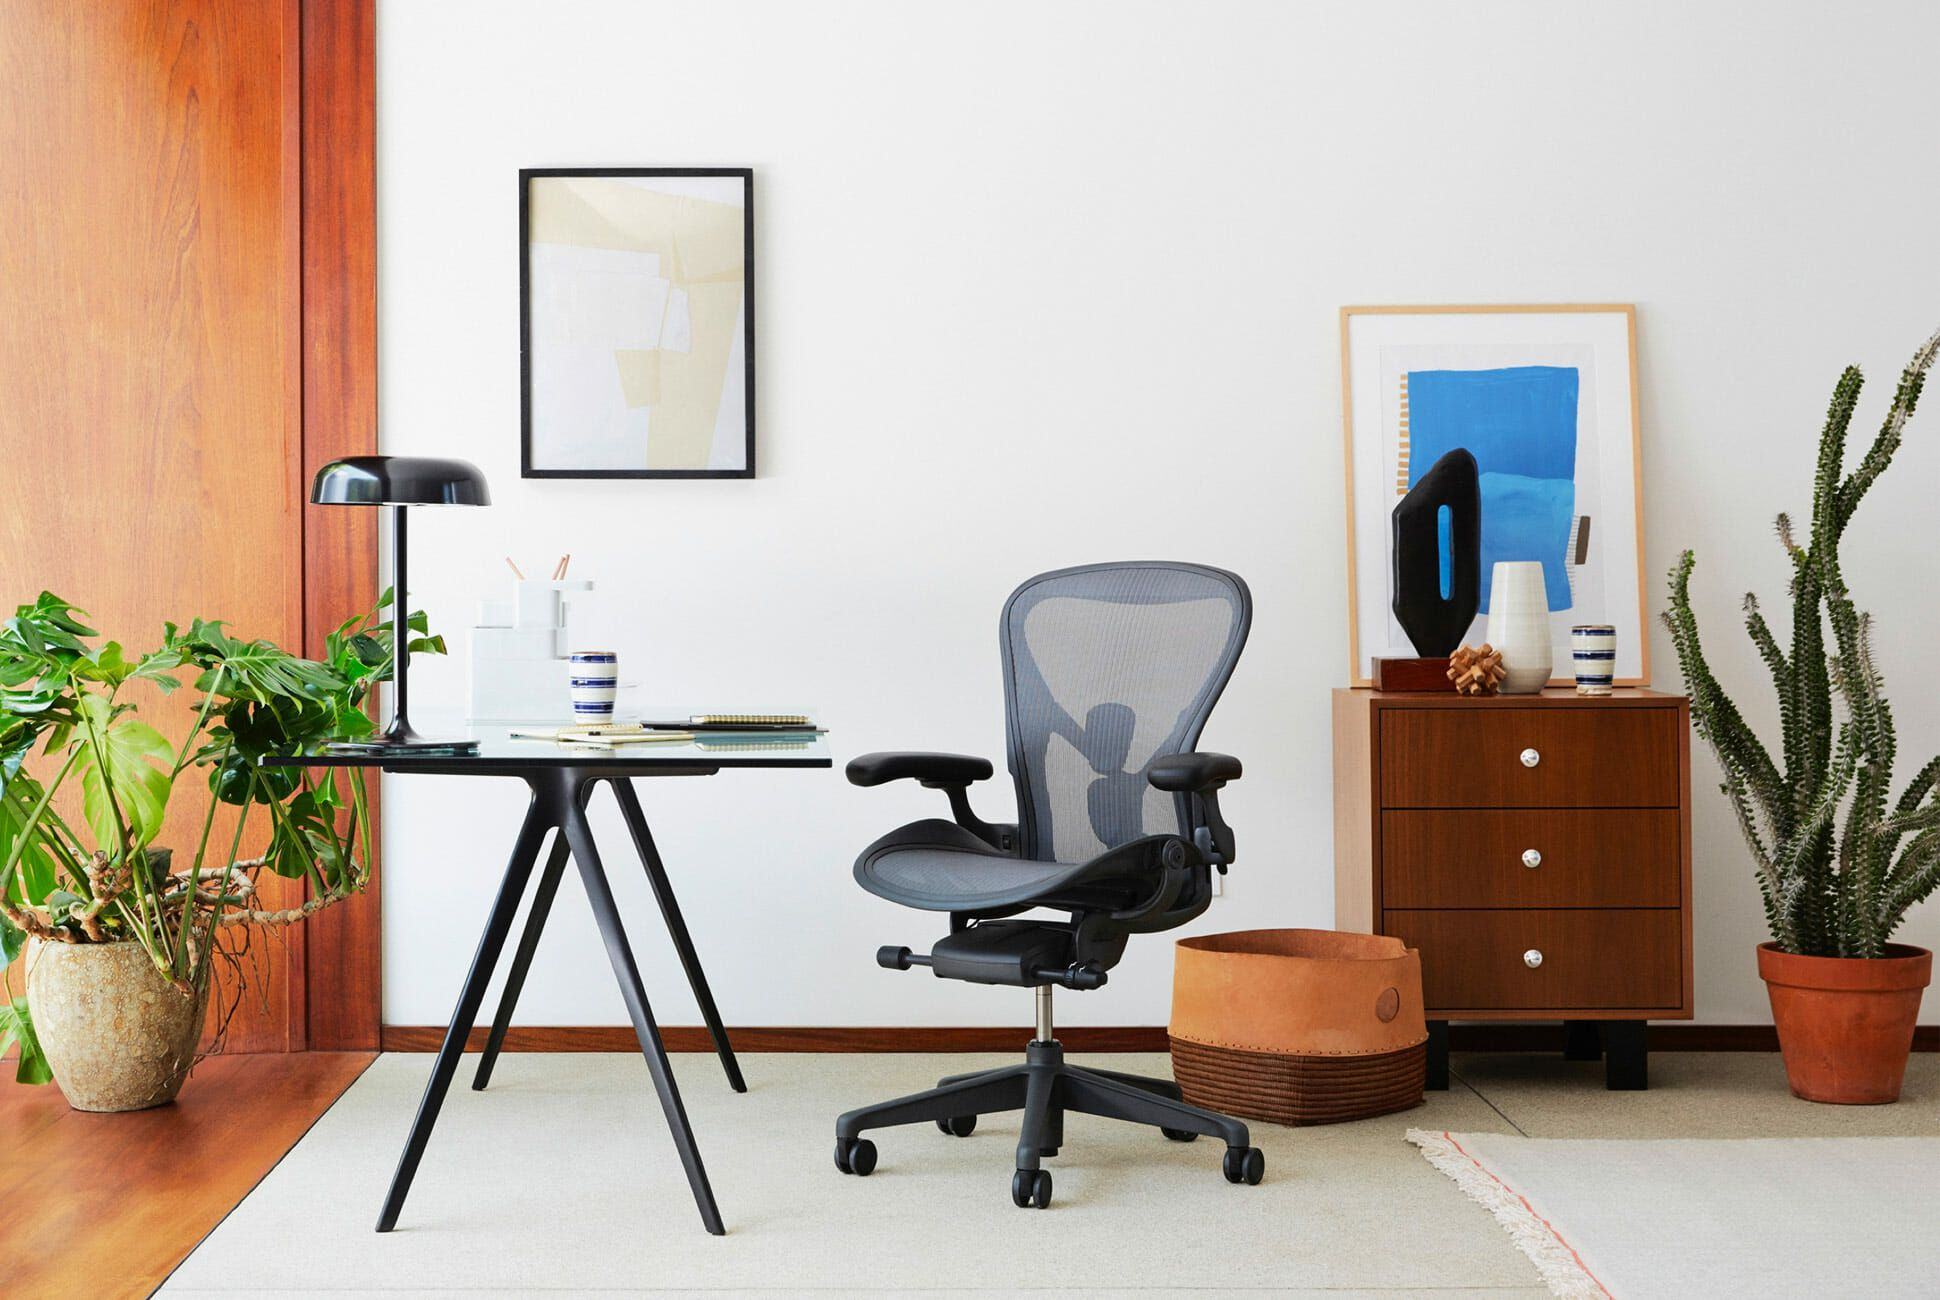 Surprising Todays Best Deals Up To 60 Off Ray Ban Sunglasses Timex Machost Co Dining Chair Design Ideas Machostcouk